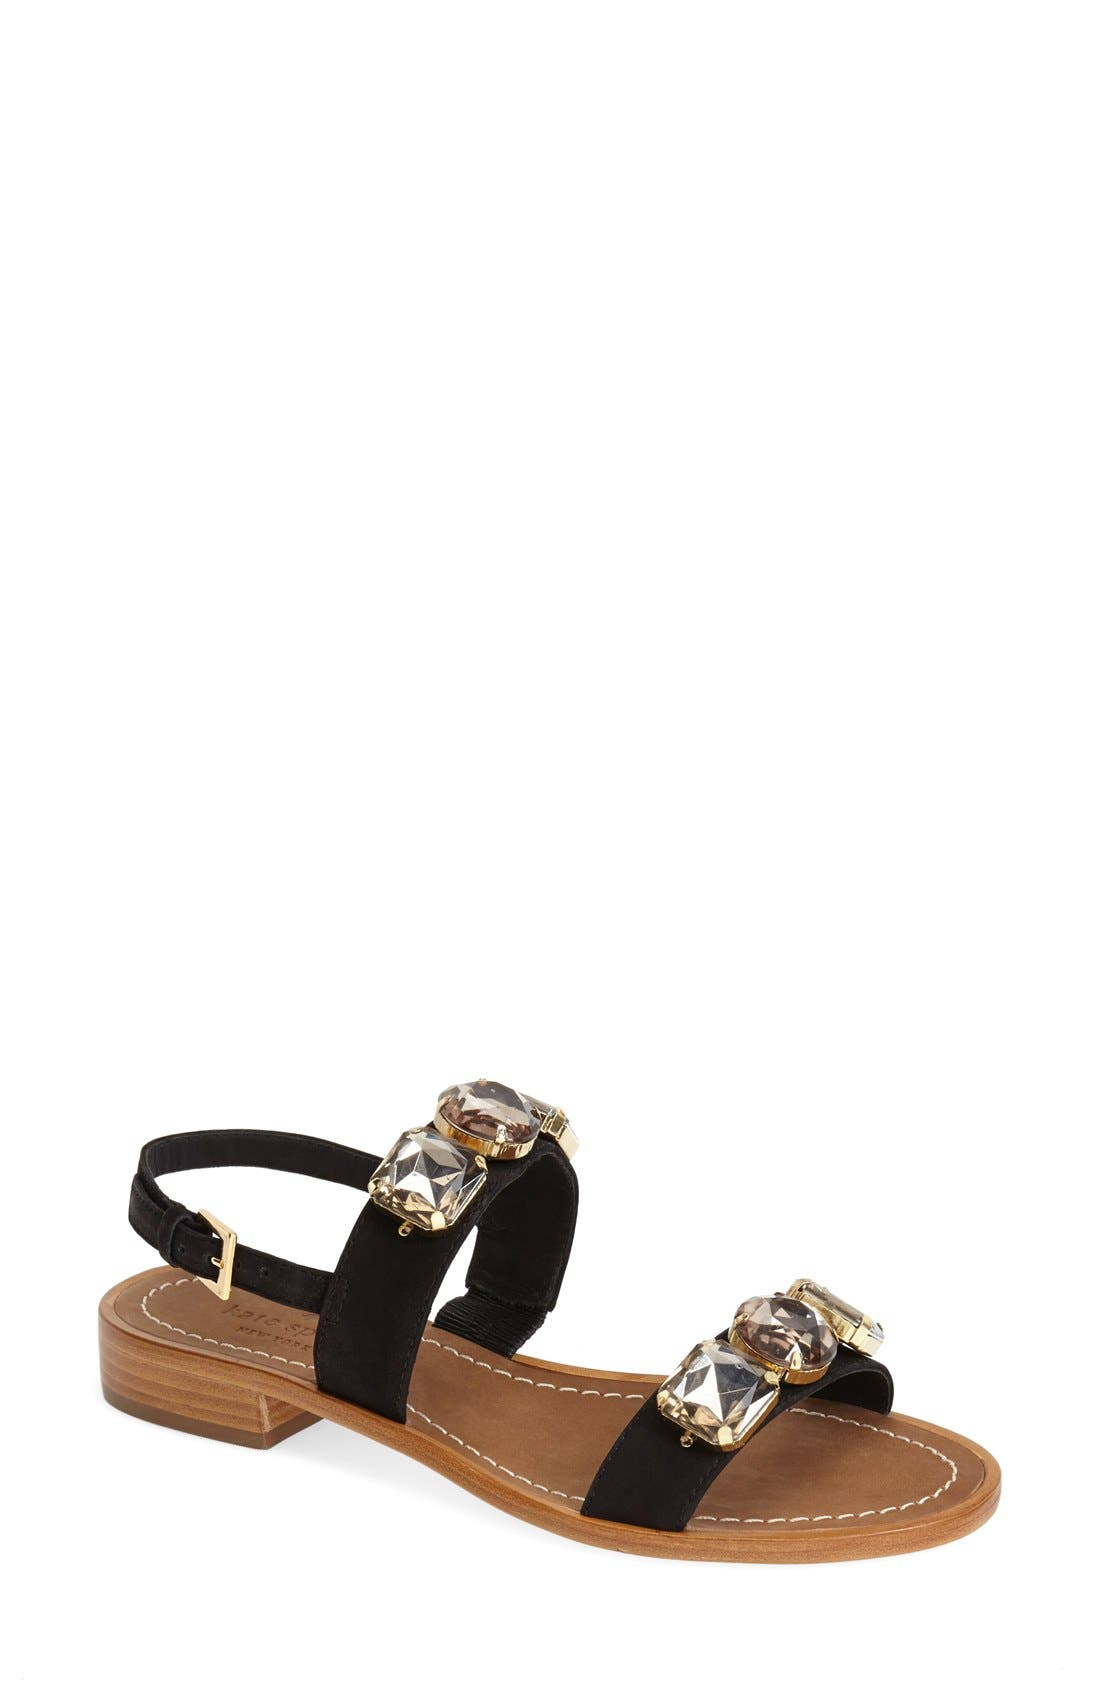 'bacau' ornate double band sandal,                         Main,                         color, 001